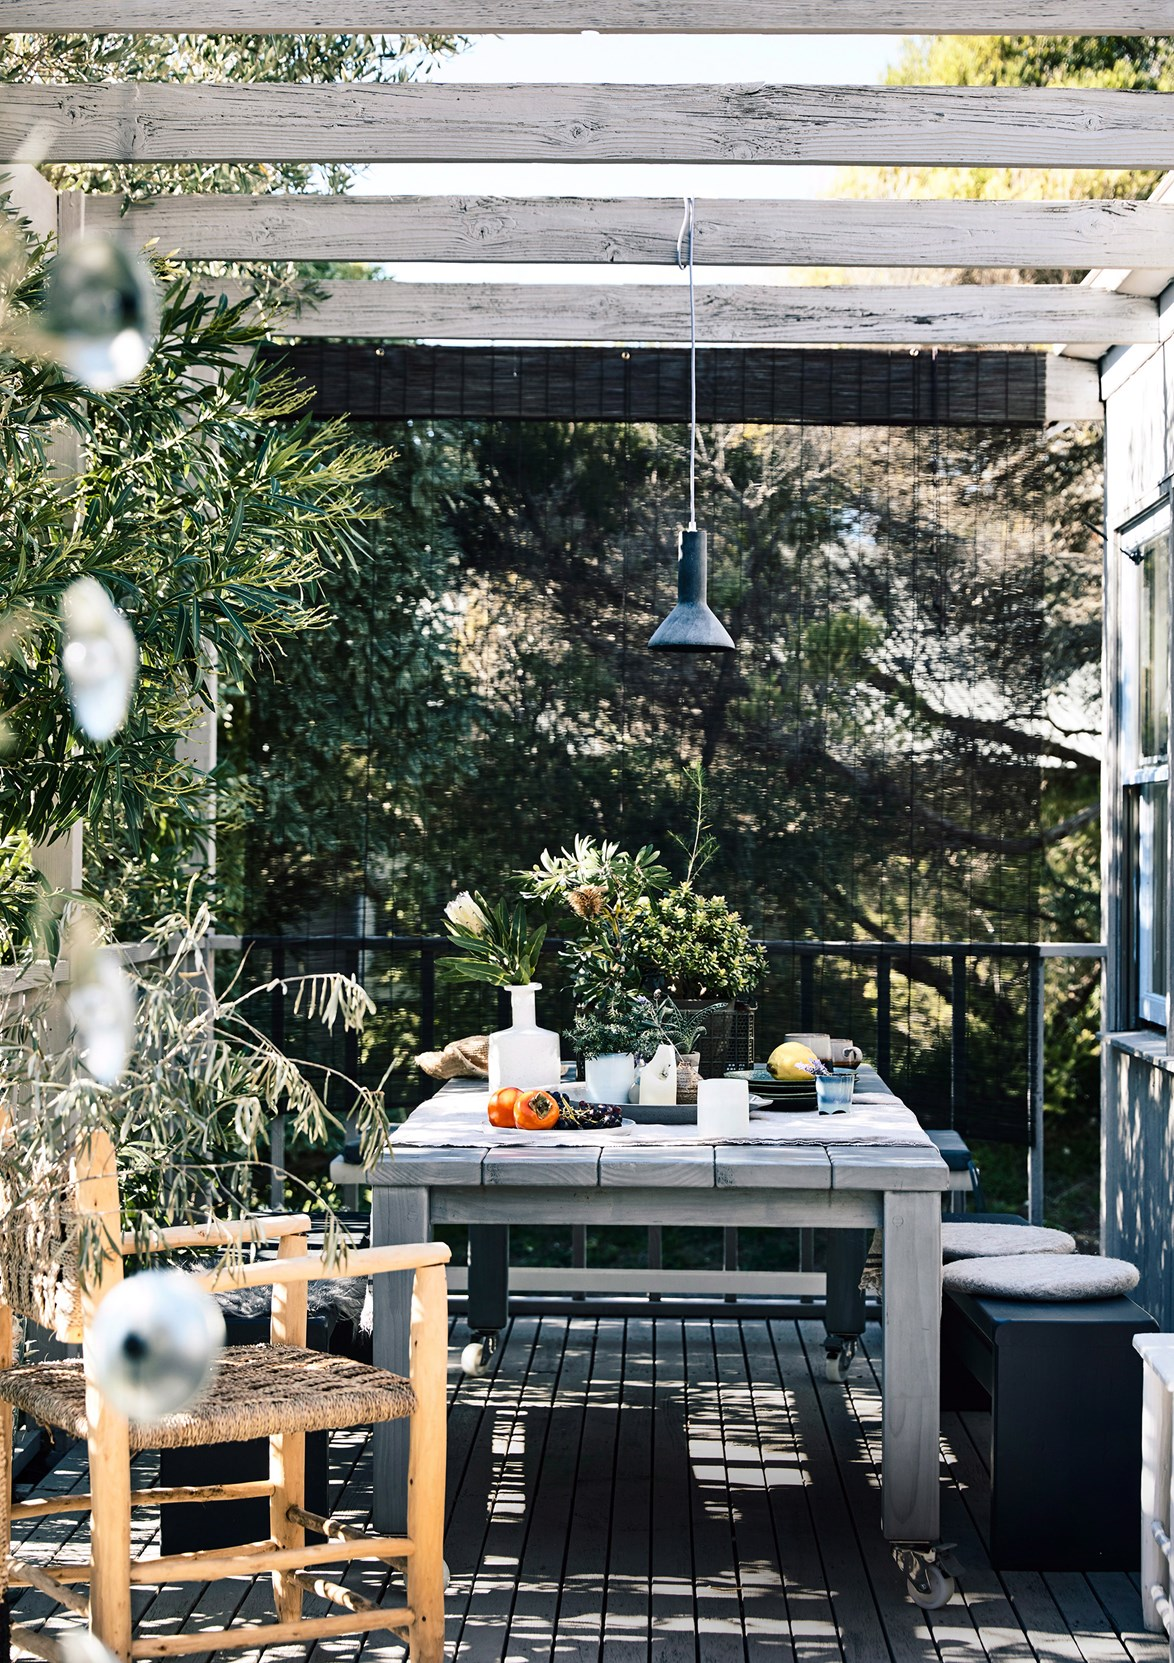 "Transform your neglected balcony into an [outdoor entertaining zone](https://www.homestolove.com.au/outdoor-entertaining-areas-2741|target=""_blank""). All you need is an outdoor setting, potted plants and lighting to create a comfortable alfresco space."